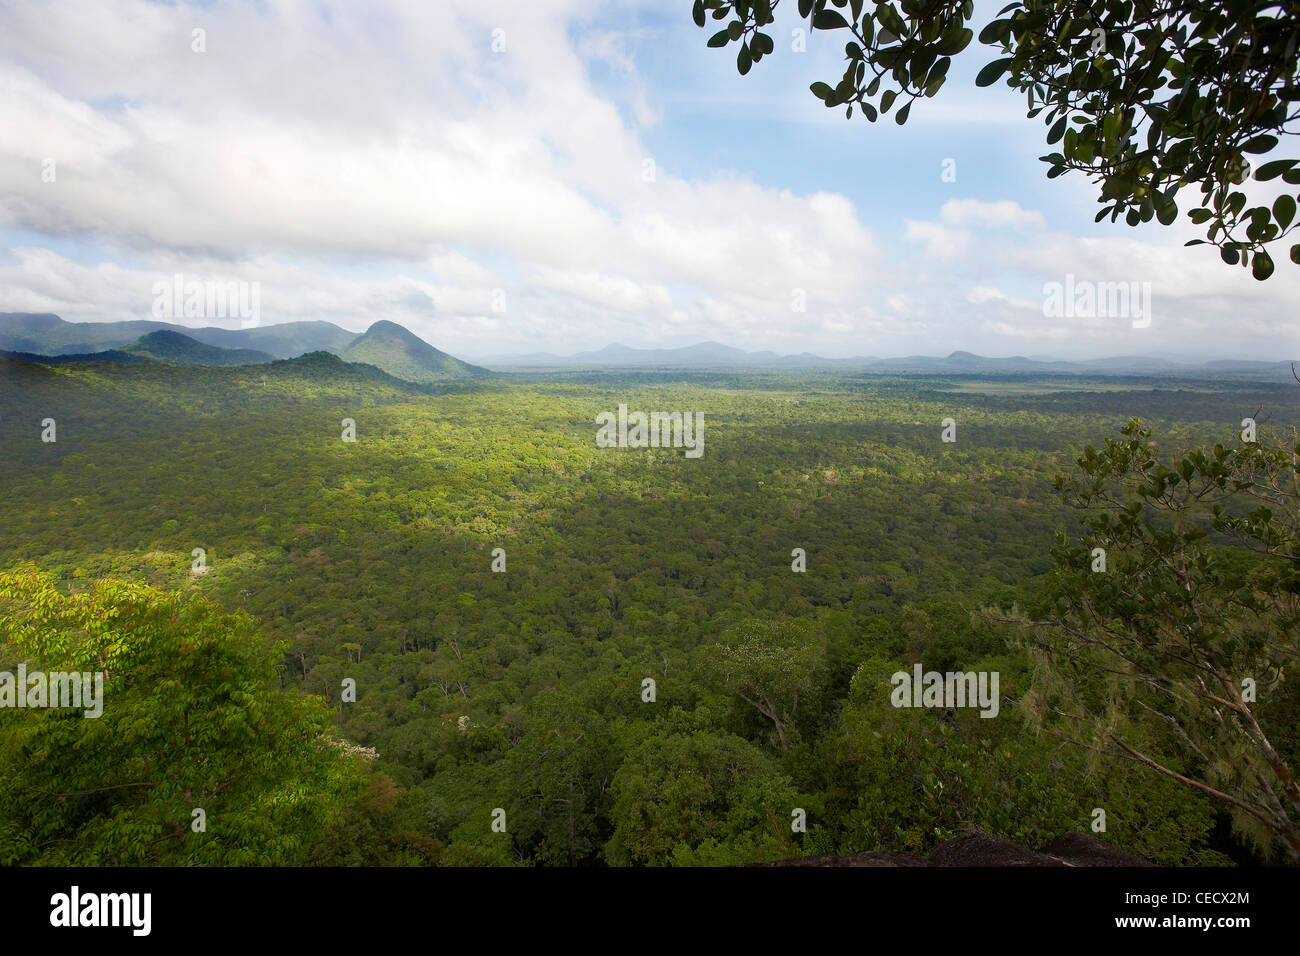 View of the primary tropical rainforest canopy, part of the Rewa Amerindian reserve, Guyana, South America - Stock Image